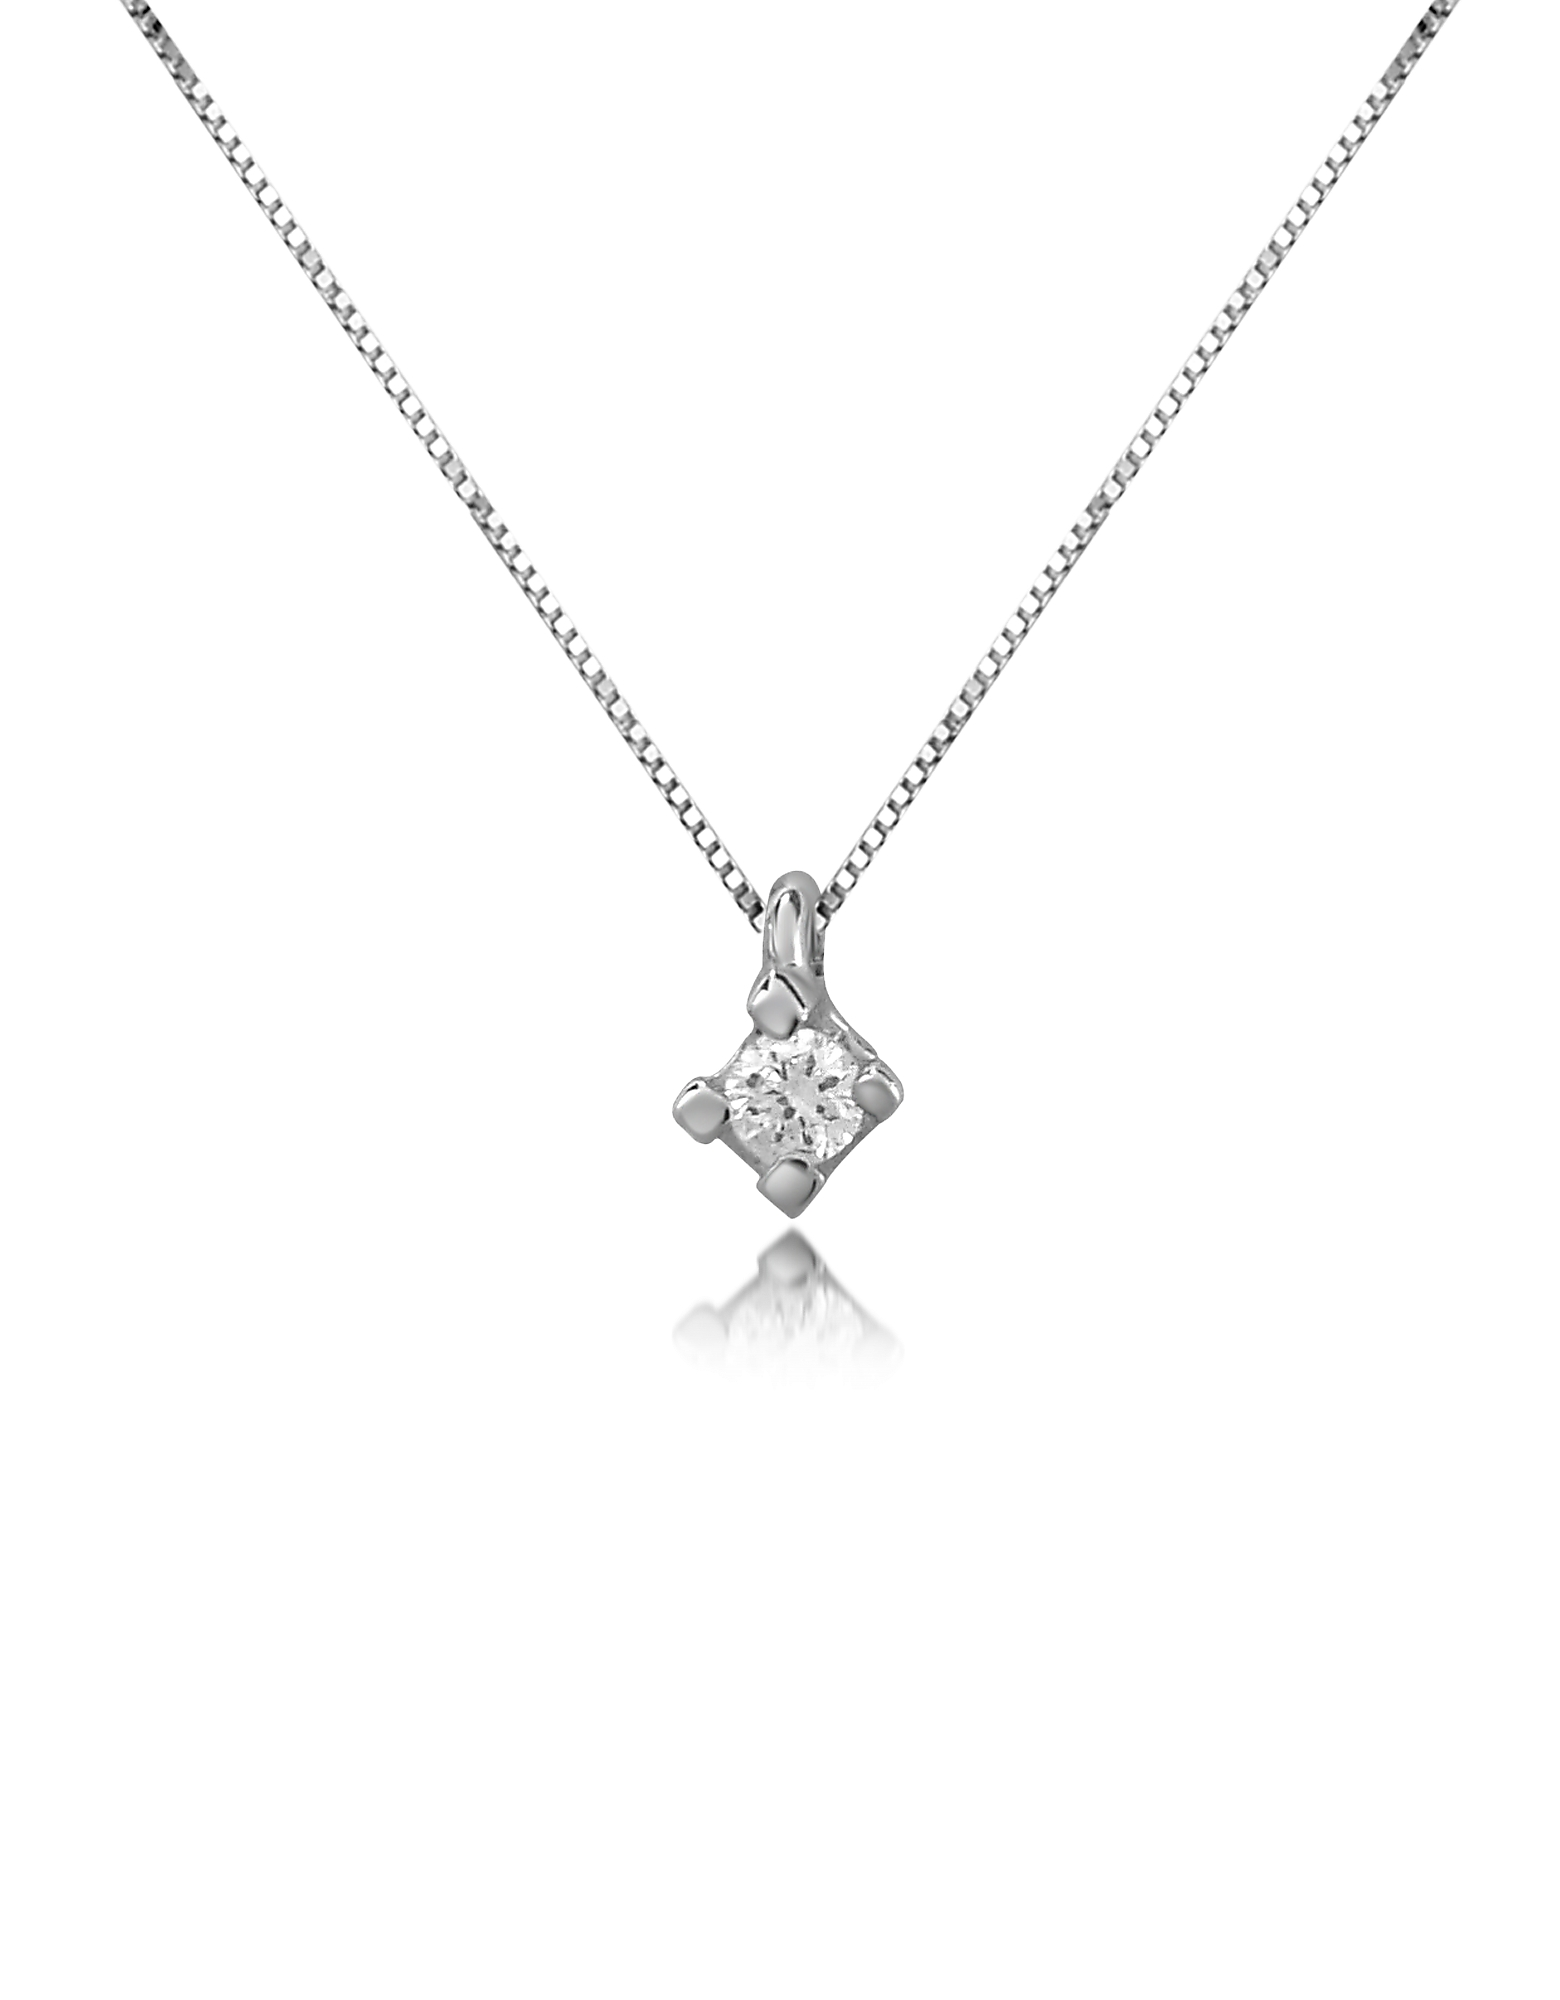 Forzieri Necklaces, 0.03 ct Diamond Solitaire Pendant 18K Gold Necklace